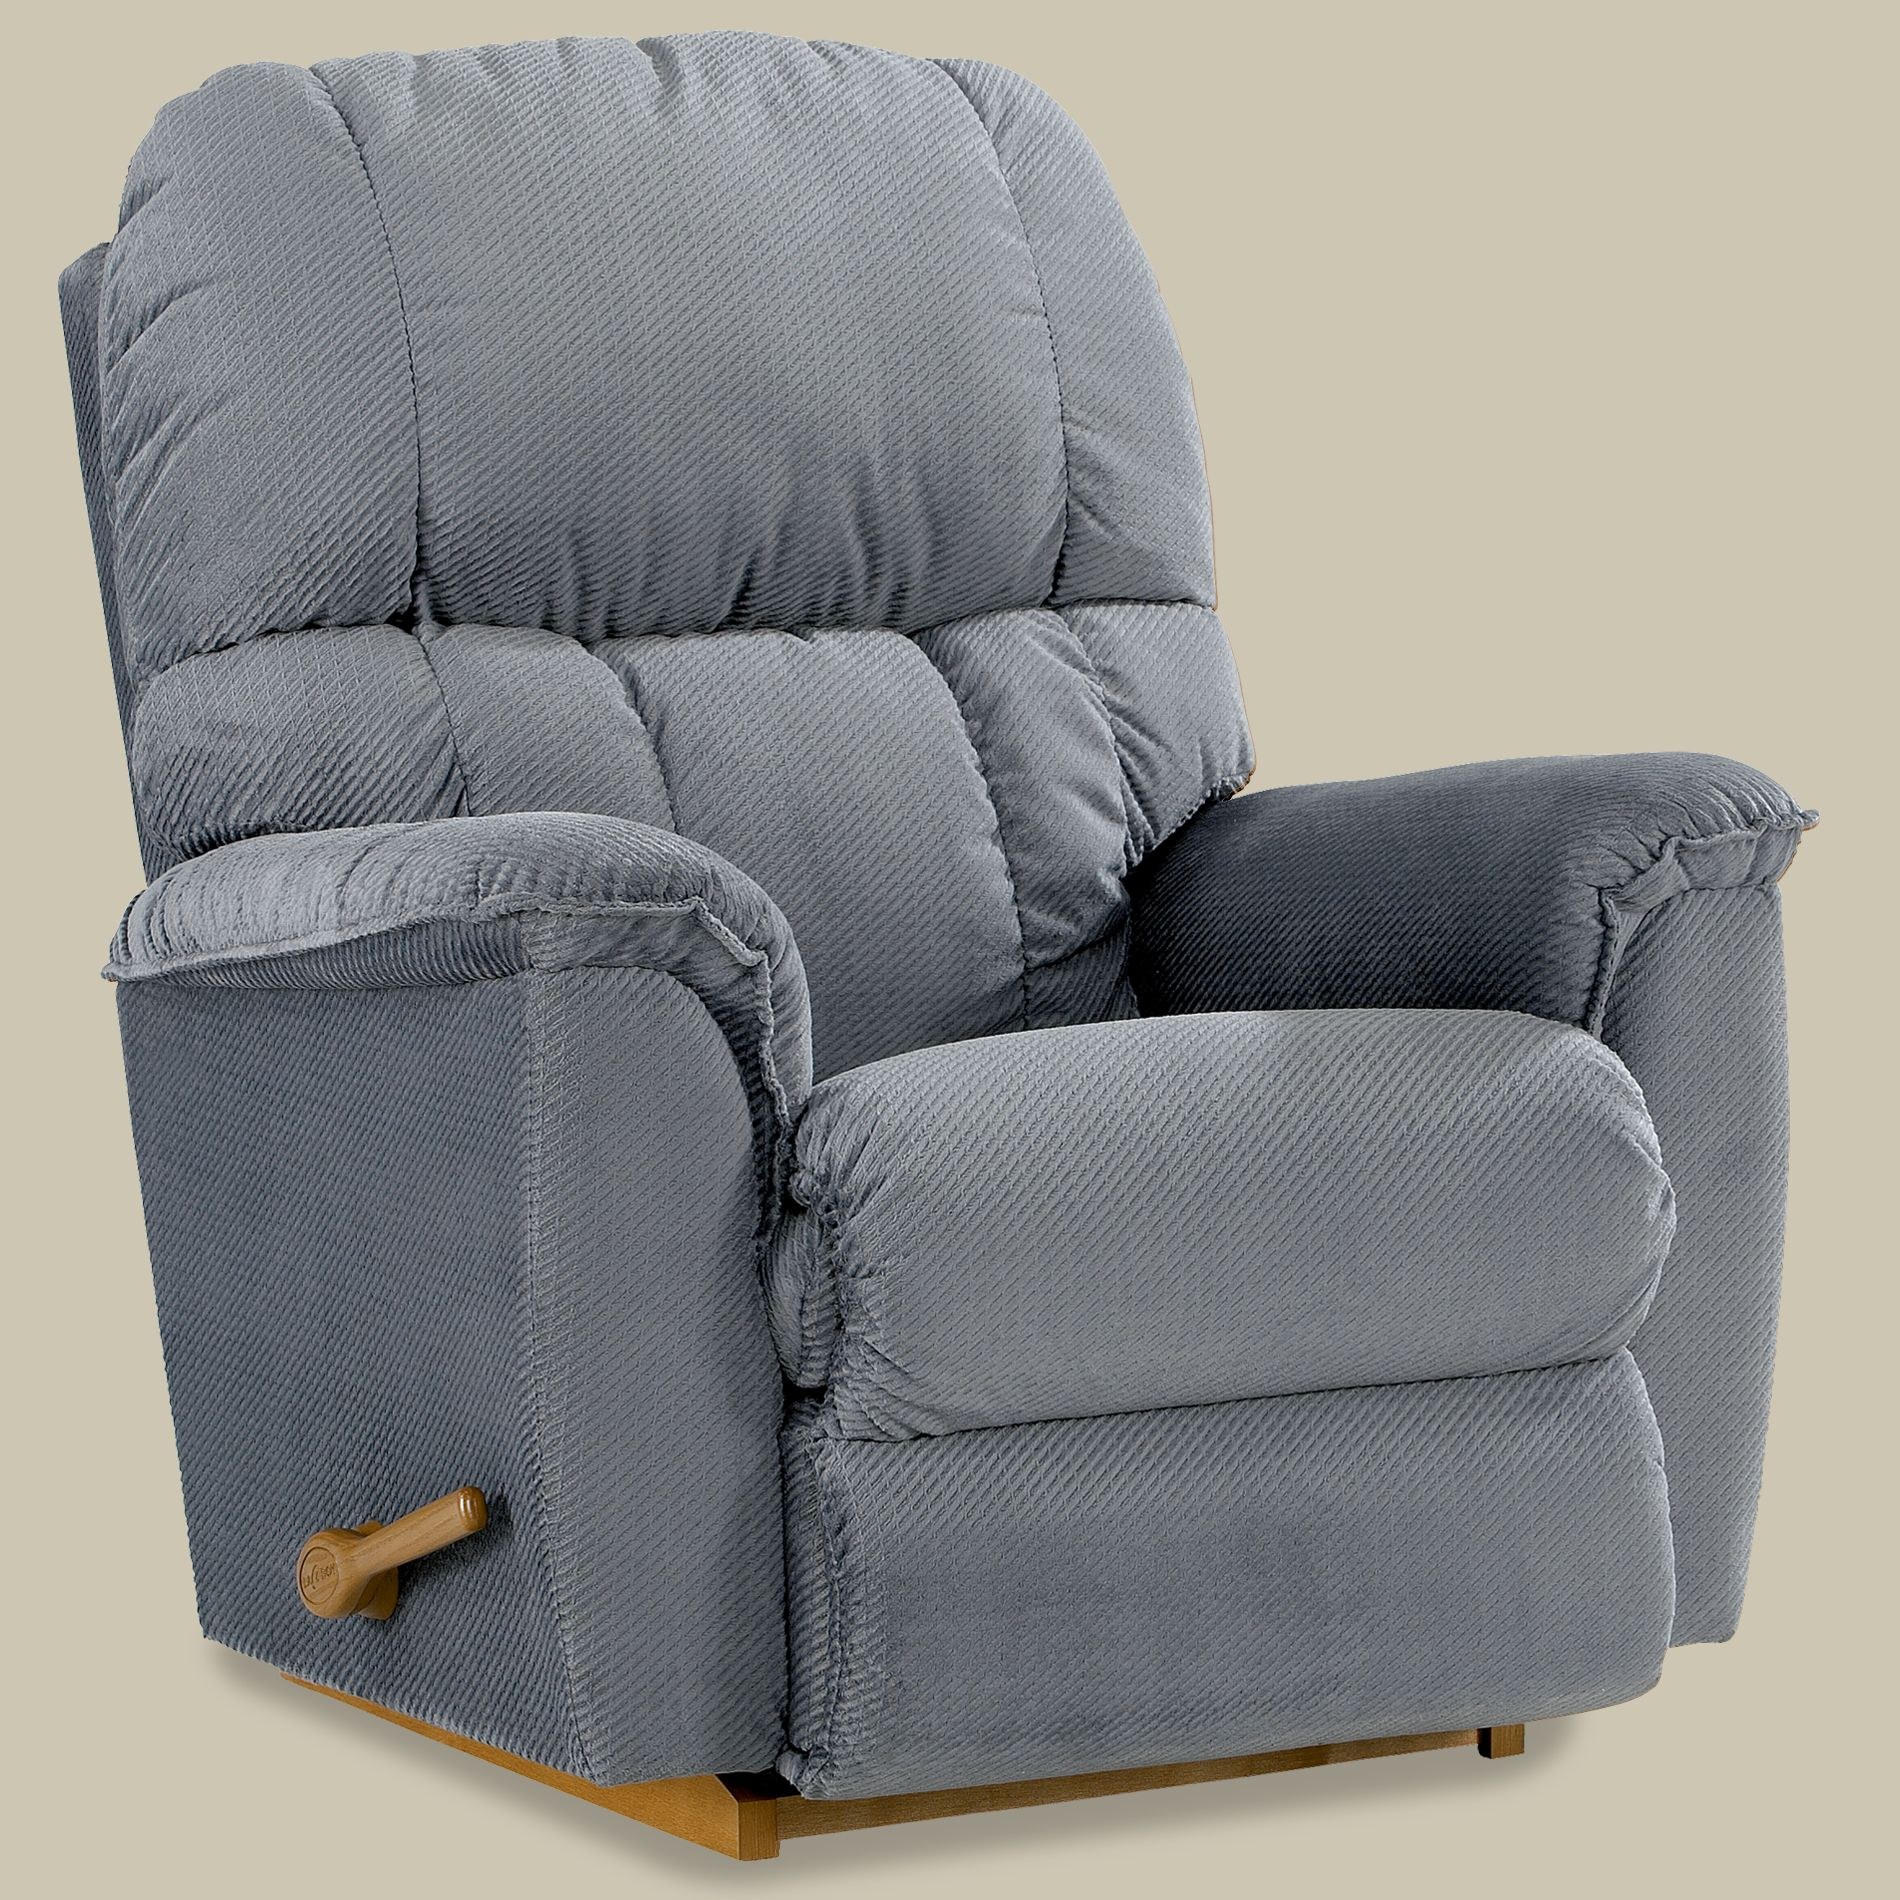 La-Z-Boy Imperial Coastal Blue Reclina-Rocker